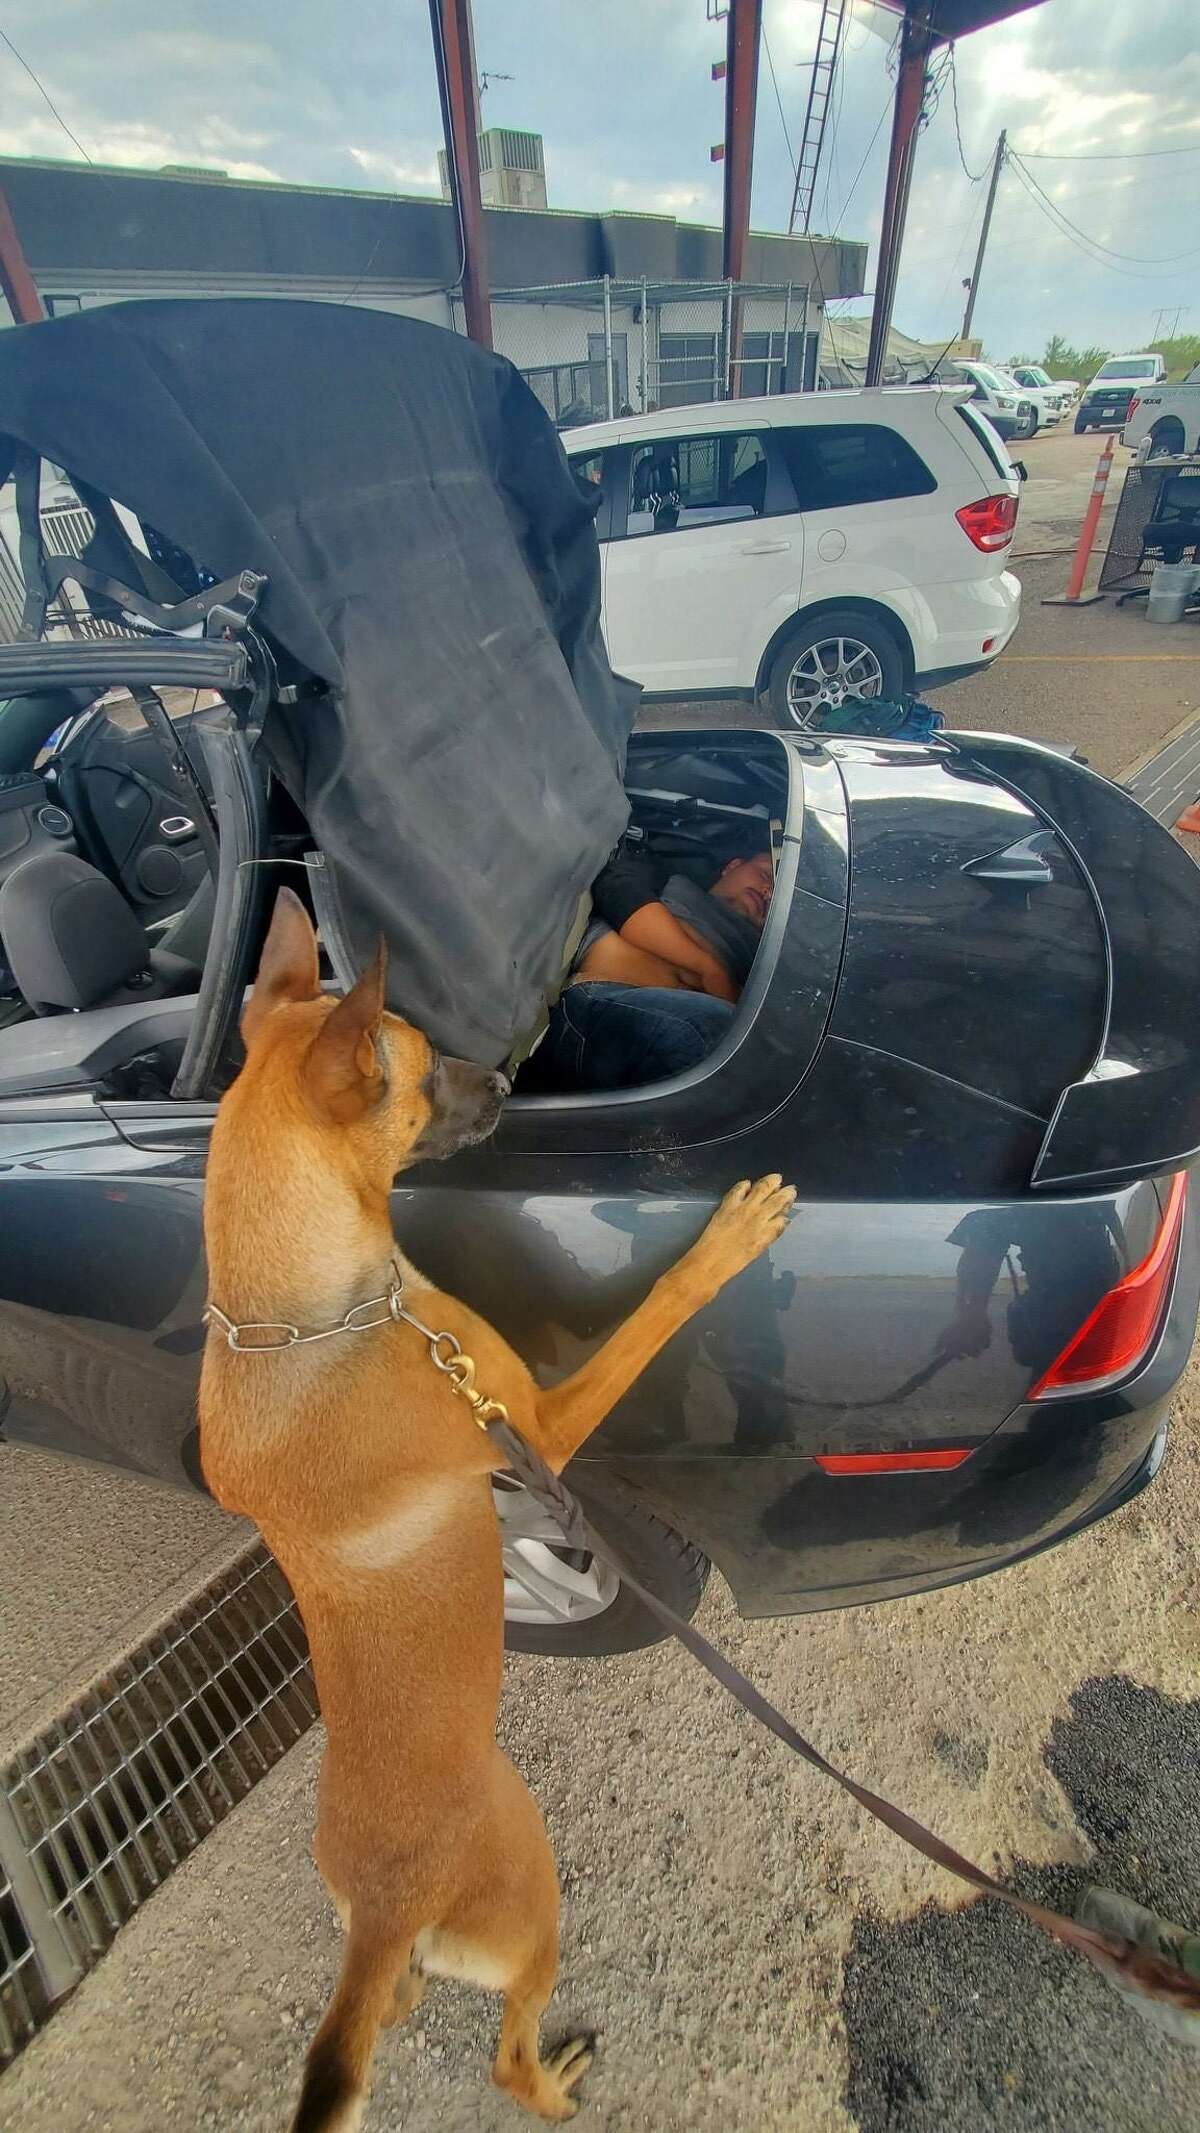 A U.S. Border Patrol K-9 unit alerts to a vehicle during an immigration inspection. An individual was found inside the compartment of a convertible. He was determined to be an immigrant who had crossed the border illegally.